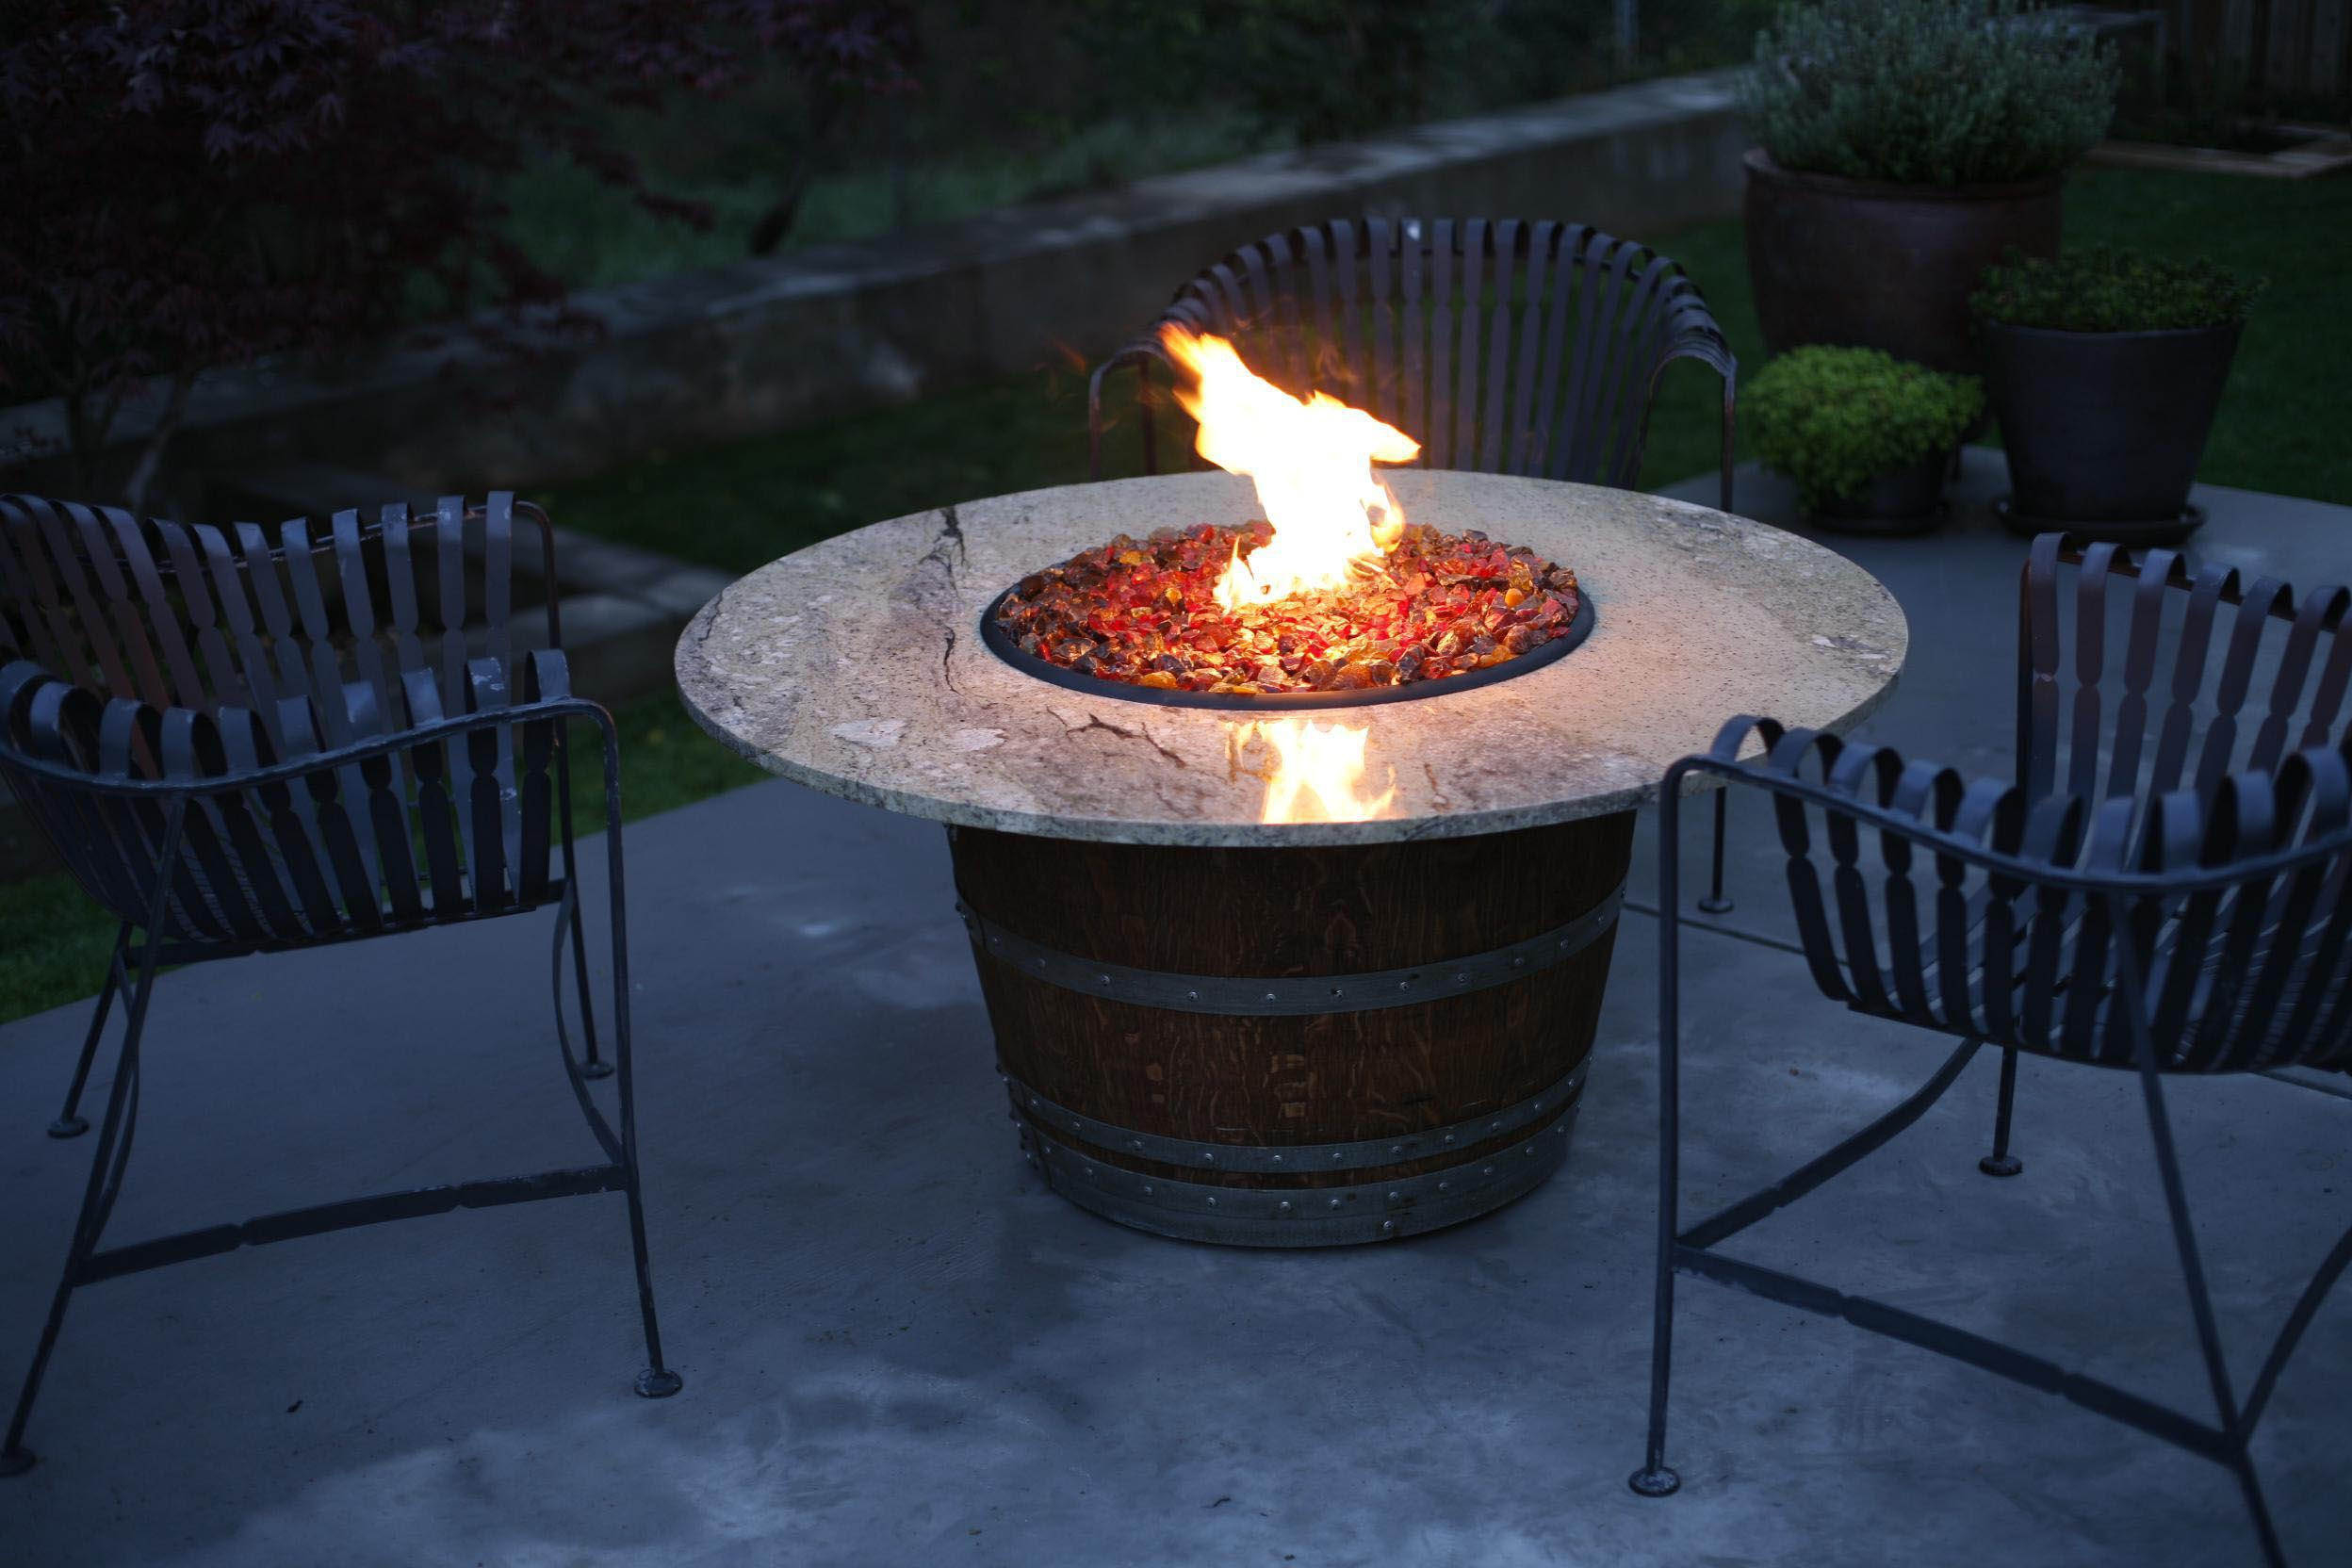 Can You Use a Propane Fire Pit Indoors